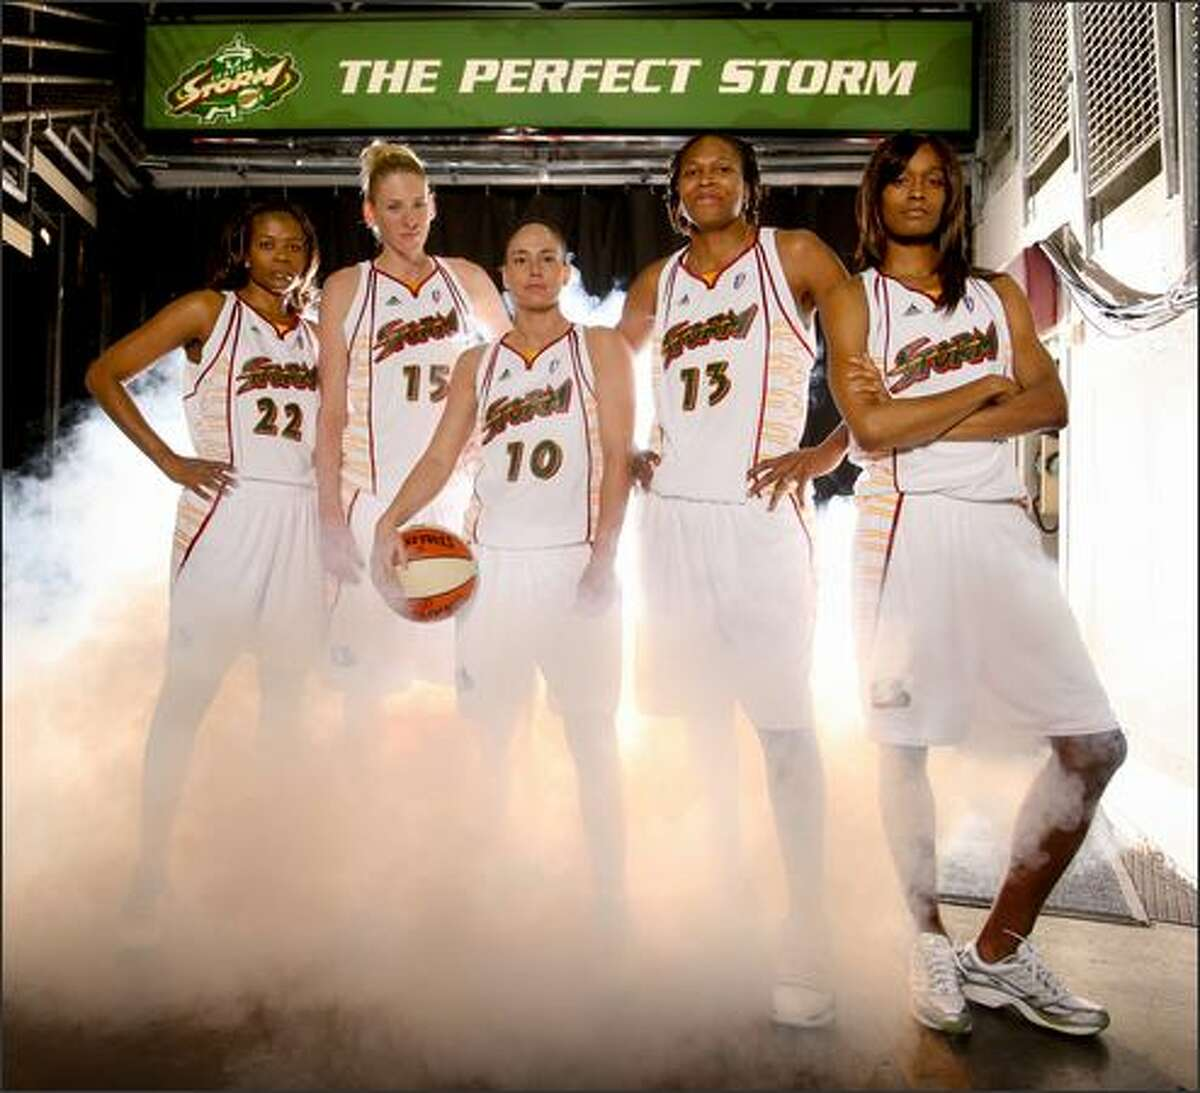 The Seattle Storm high profile starting five: Sheryl Swoopes, Lauren Jackson, Sue Bird, Yolanda Griffith and Swin Cash photographed at Key Arena.